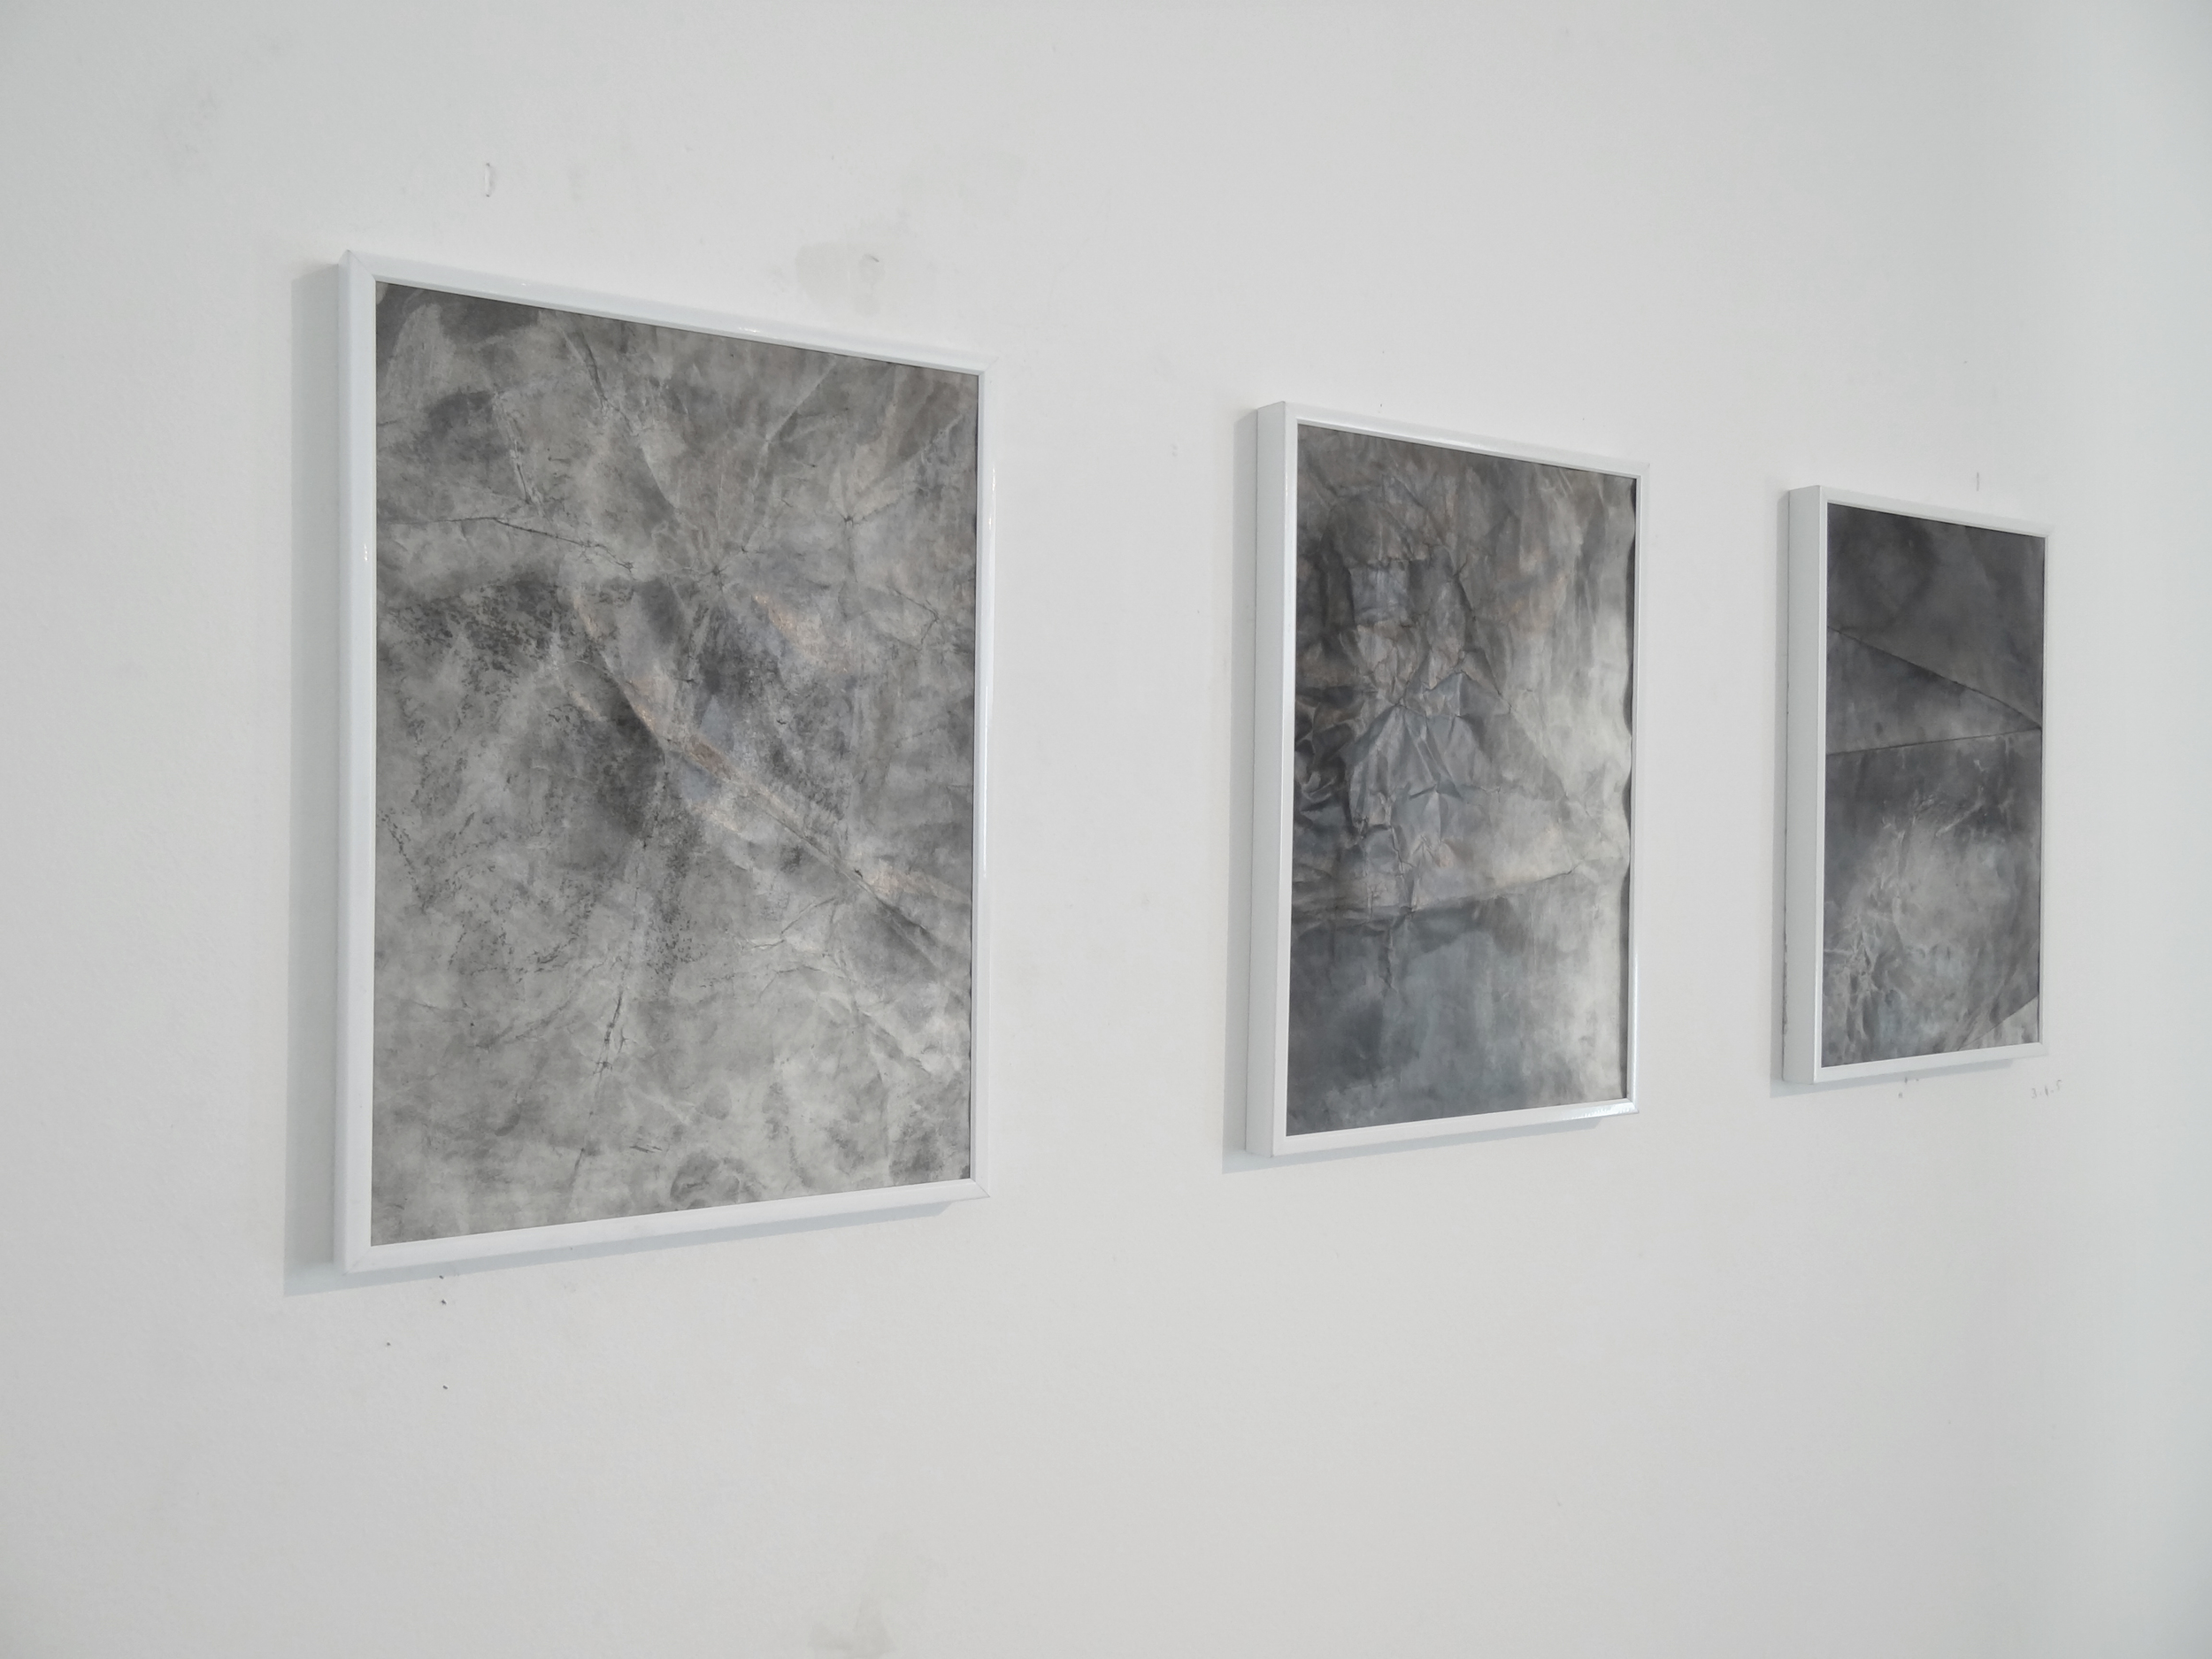 Bruno Albizzati Untitled series, 2014 Graphite and charcoal powder on paper 30 x 20 cm each